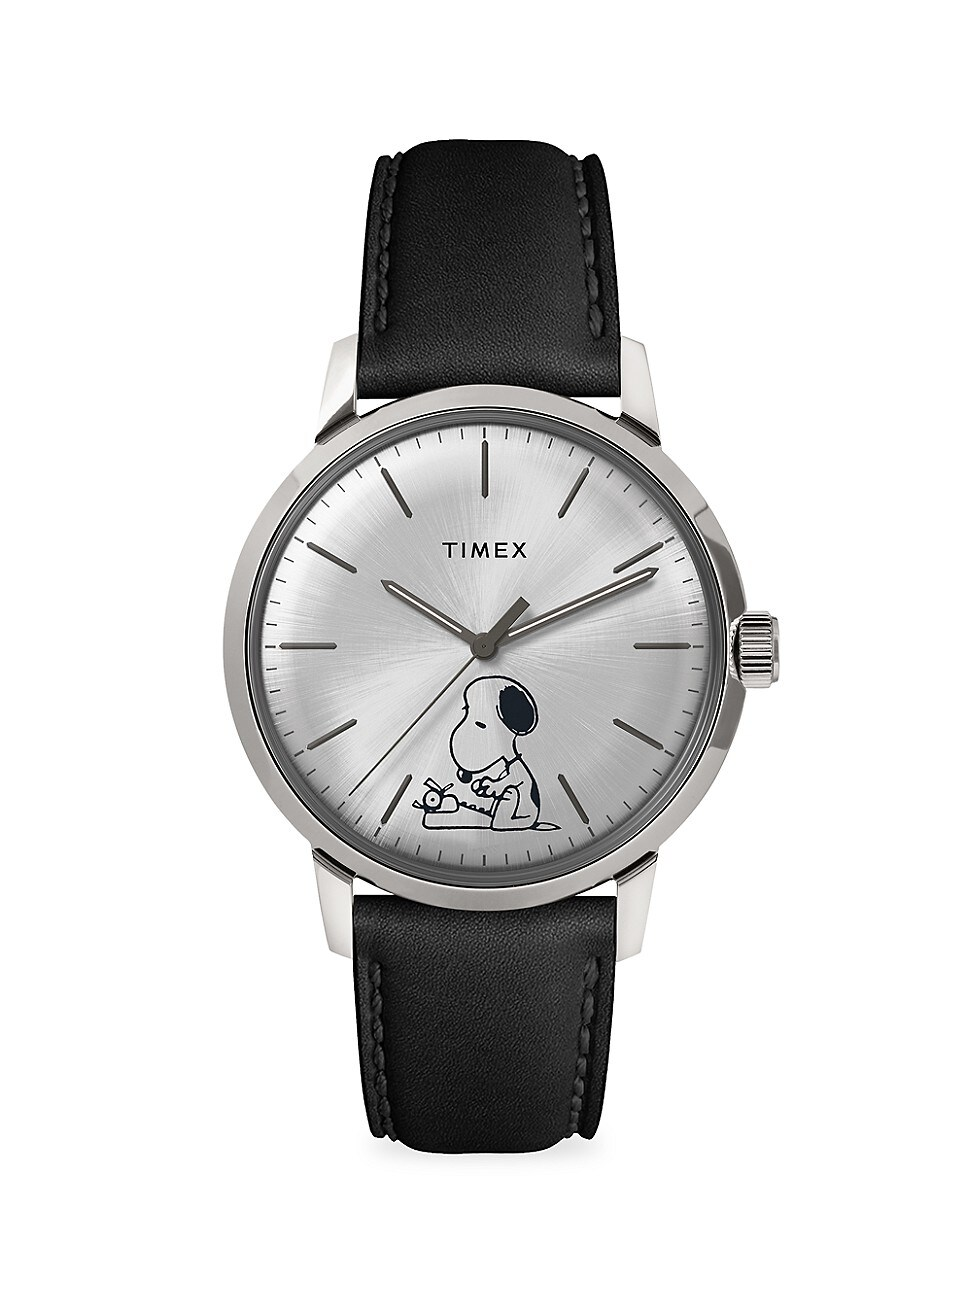 TIMEX MARLIN AUTOMATIC TYPING SNOOPY 40MM LEATHER STRAP WATCH